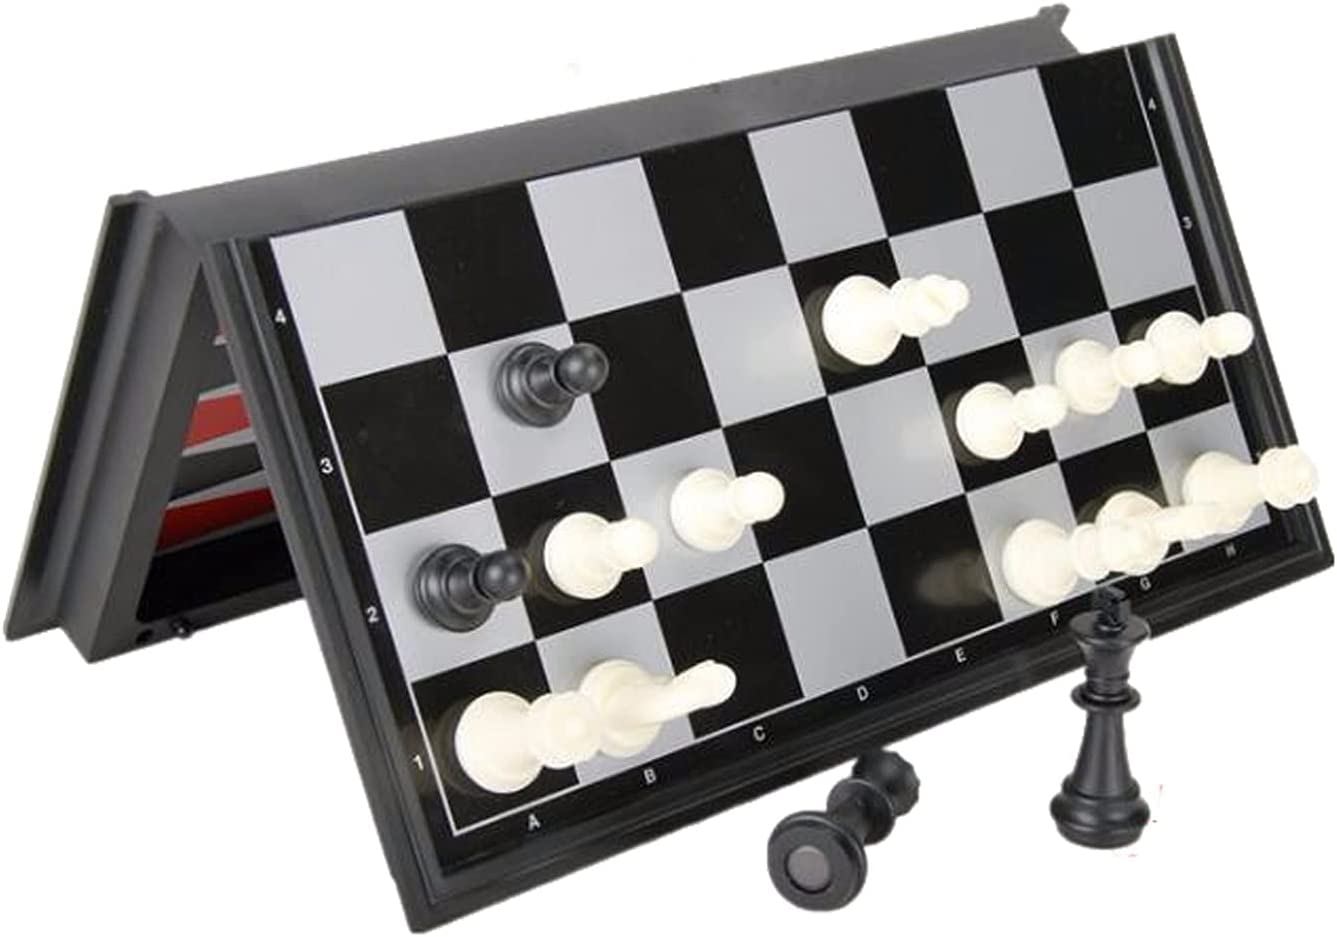 Be super welcome ZZHH 3-in-1 Wooden Chess Set Chessboard Game Folding New sales Check